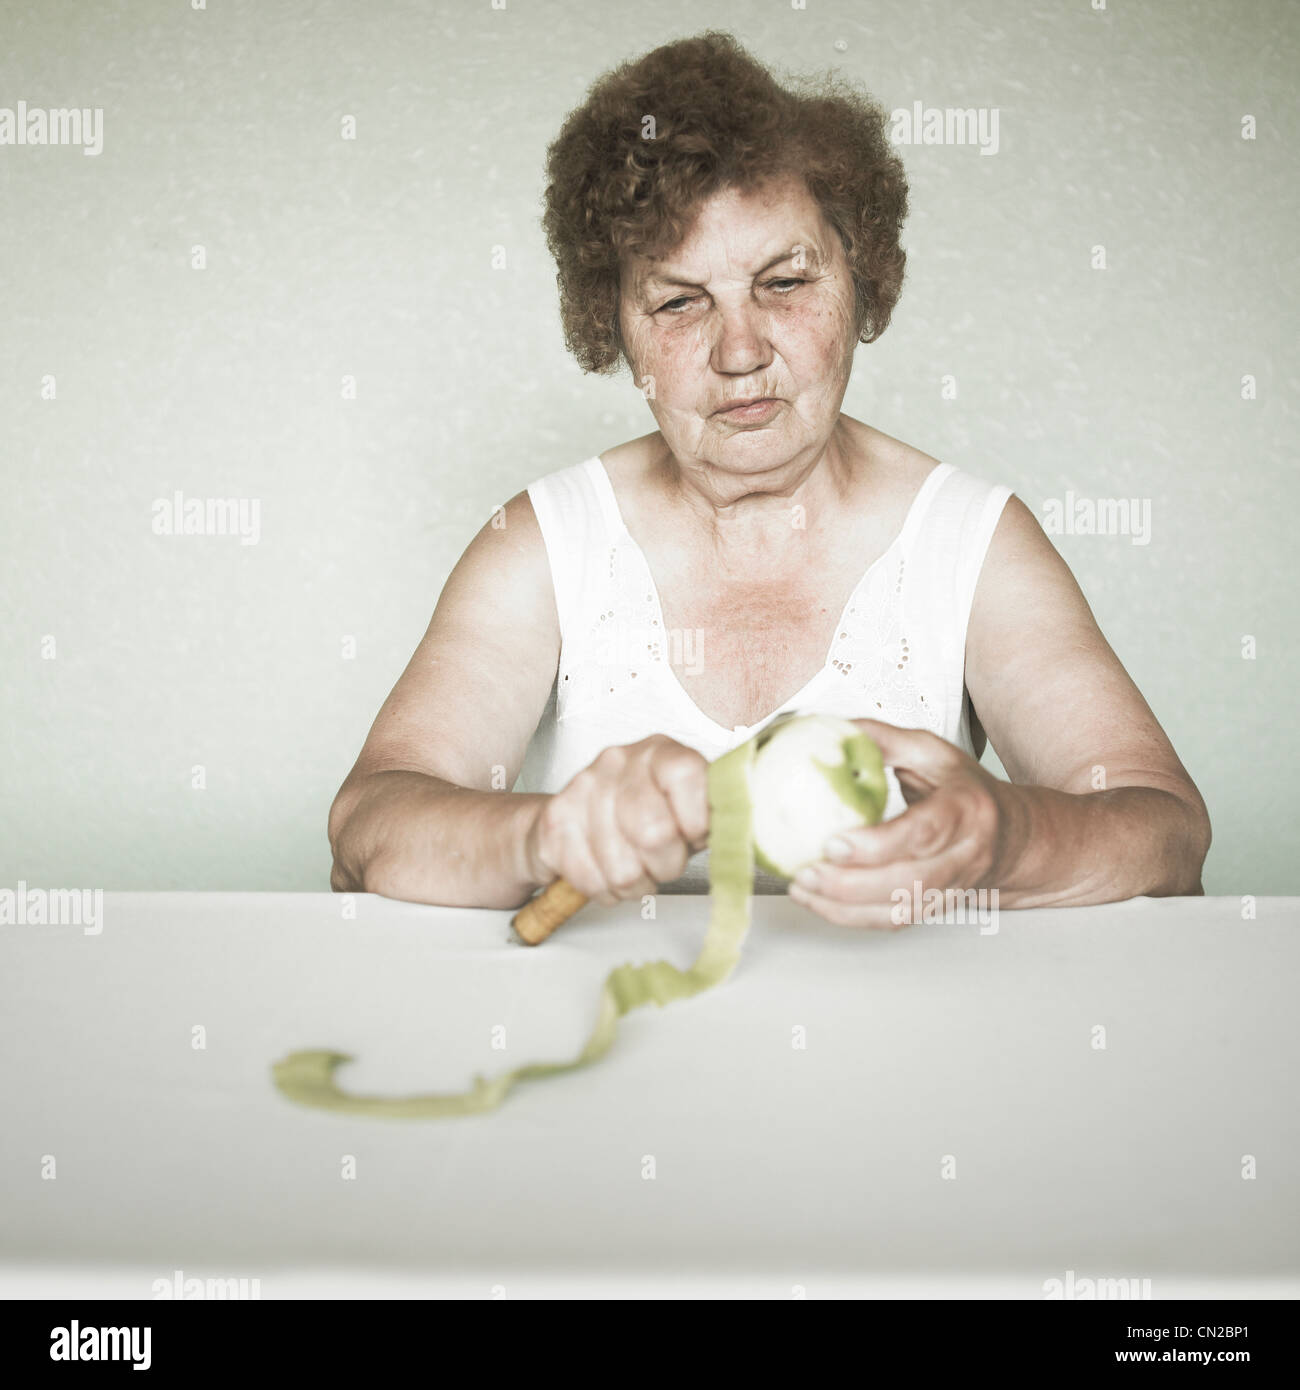 Gracious senior lady portrait cleaning an apple - Stock Image